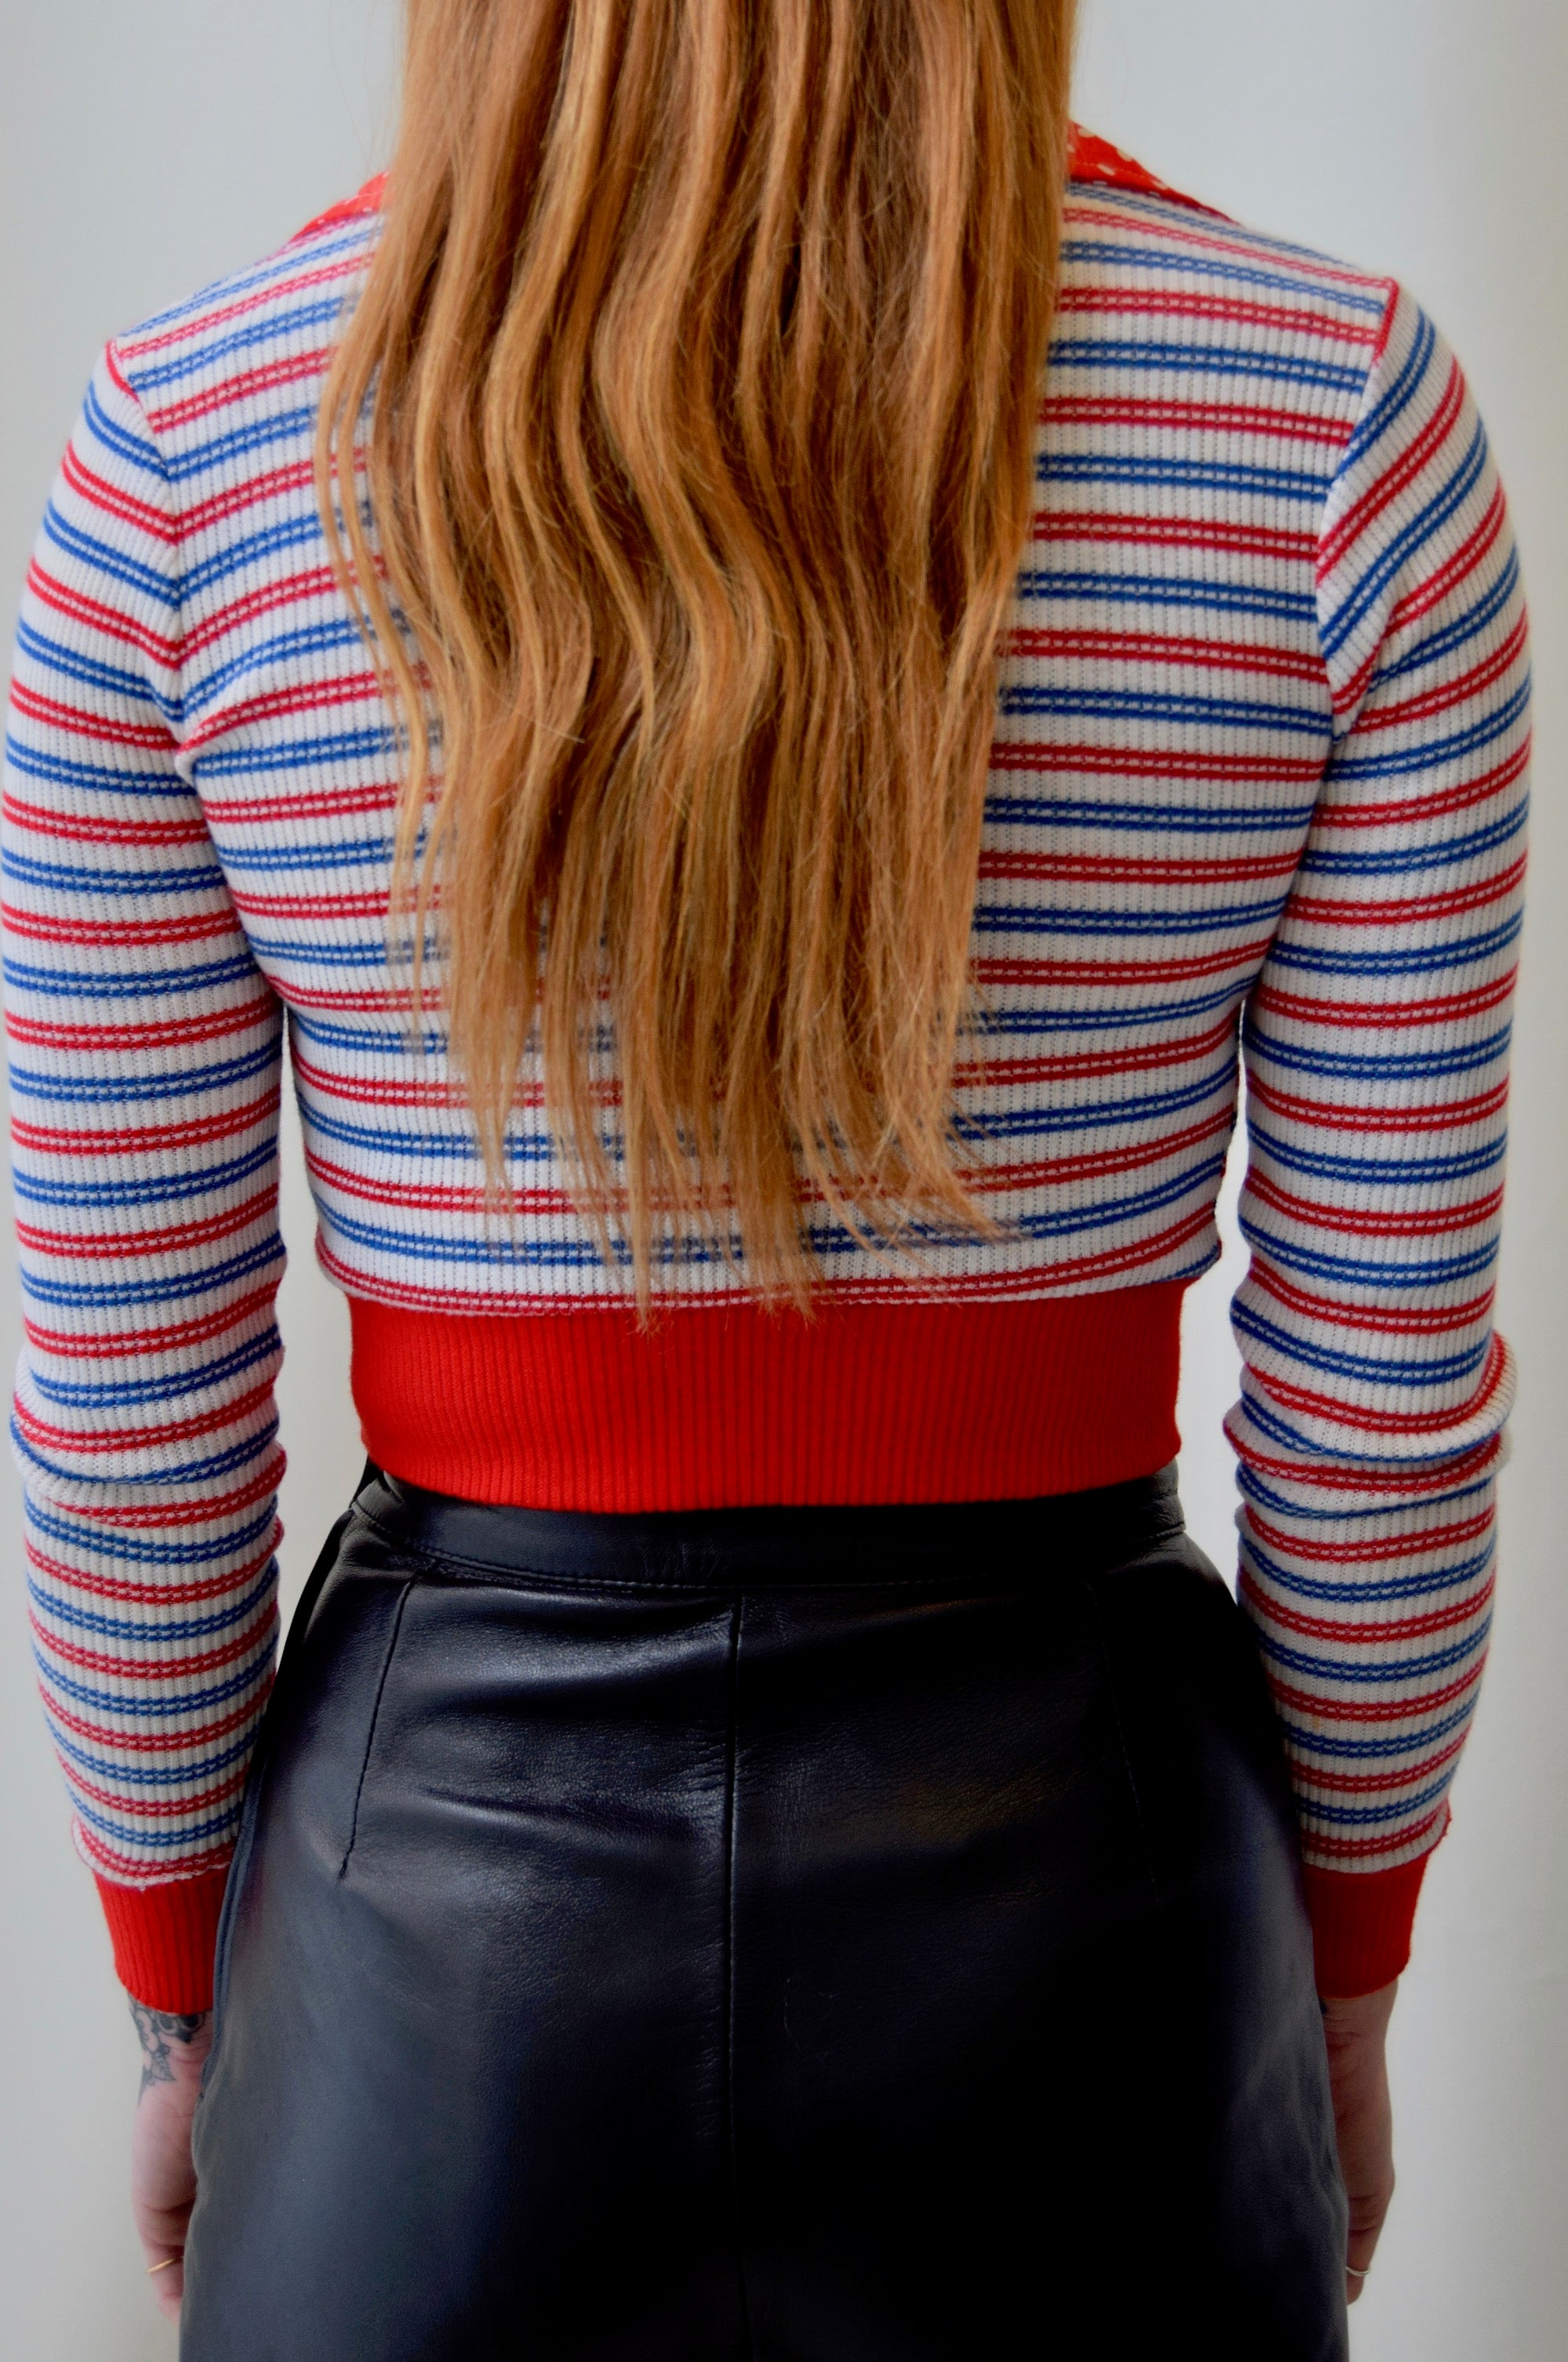 1970's Ribbed Red White & Blue Striped Crop Top